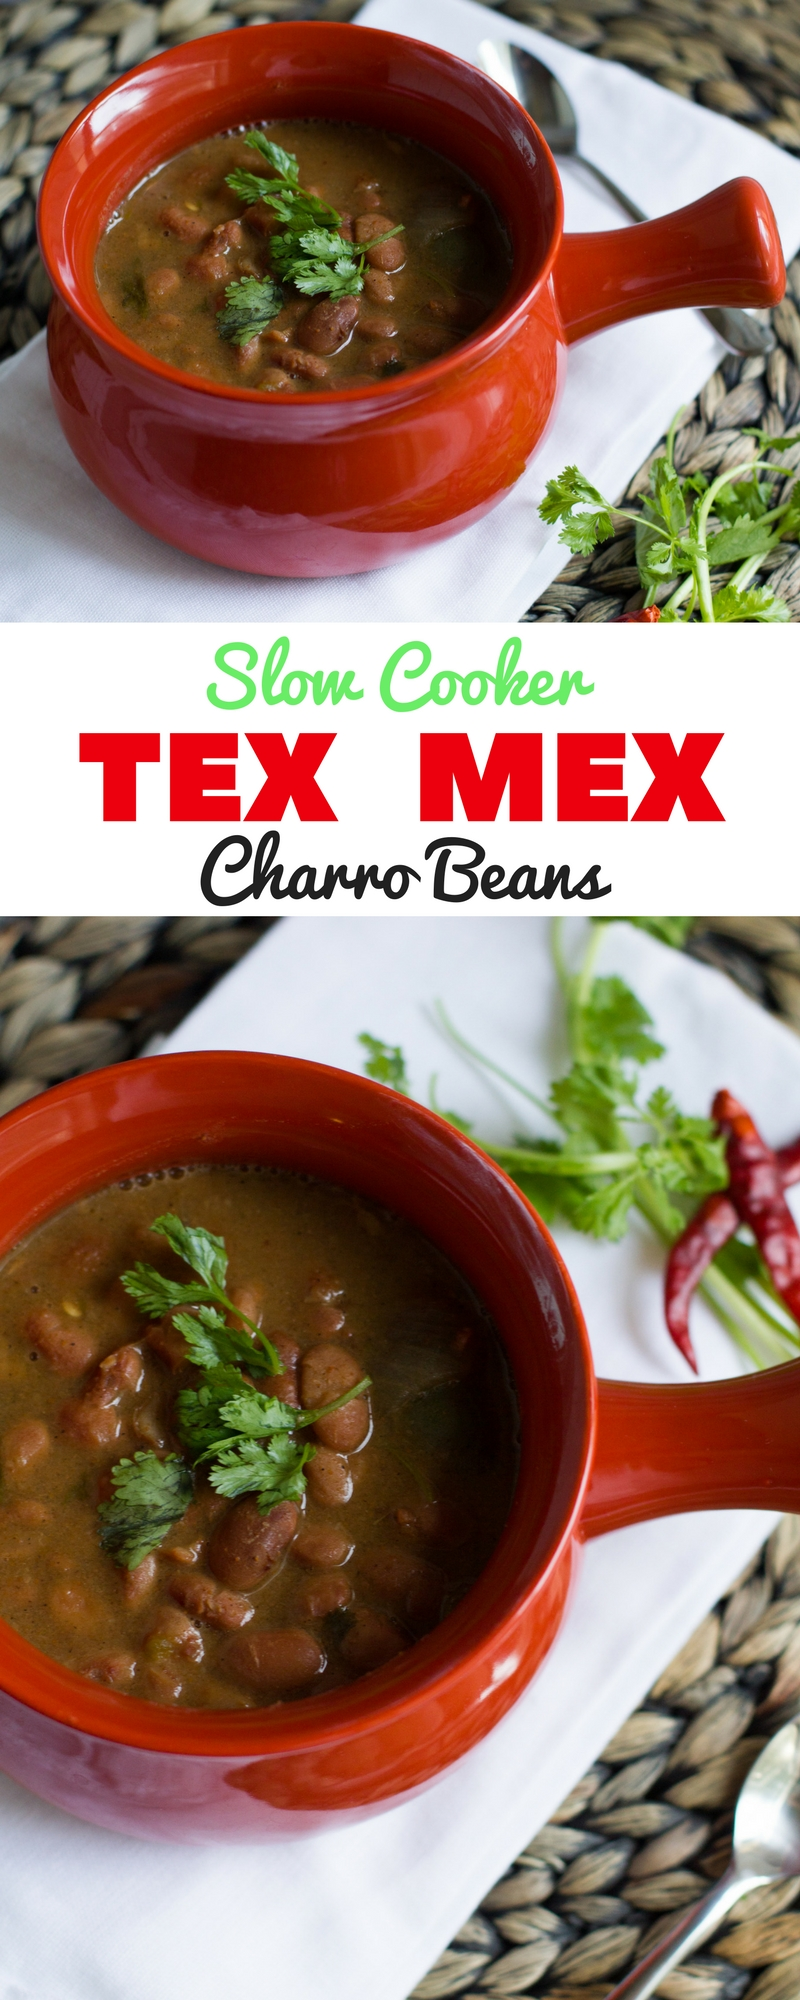 "Tex Mex Charro Beans. The easiest ""set-and-forget"" slow cooker dish that will leave your house smelling like Tex Mex heaven."